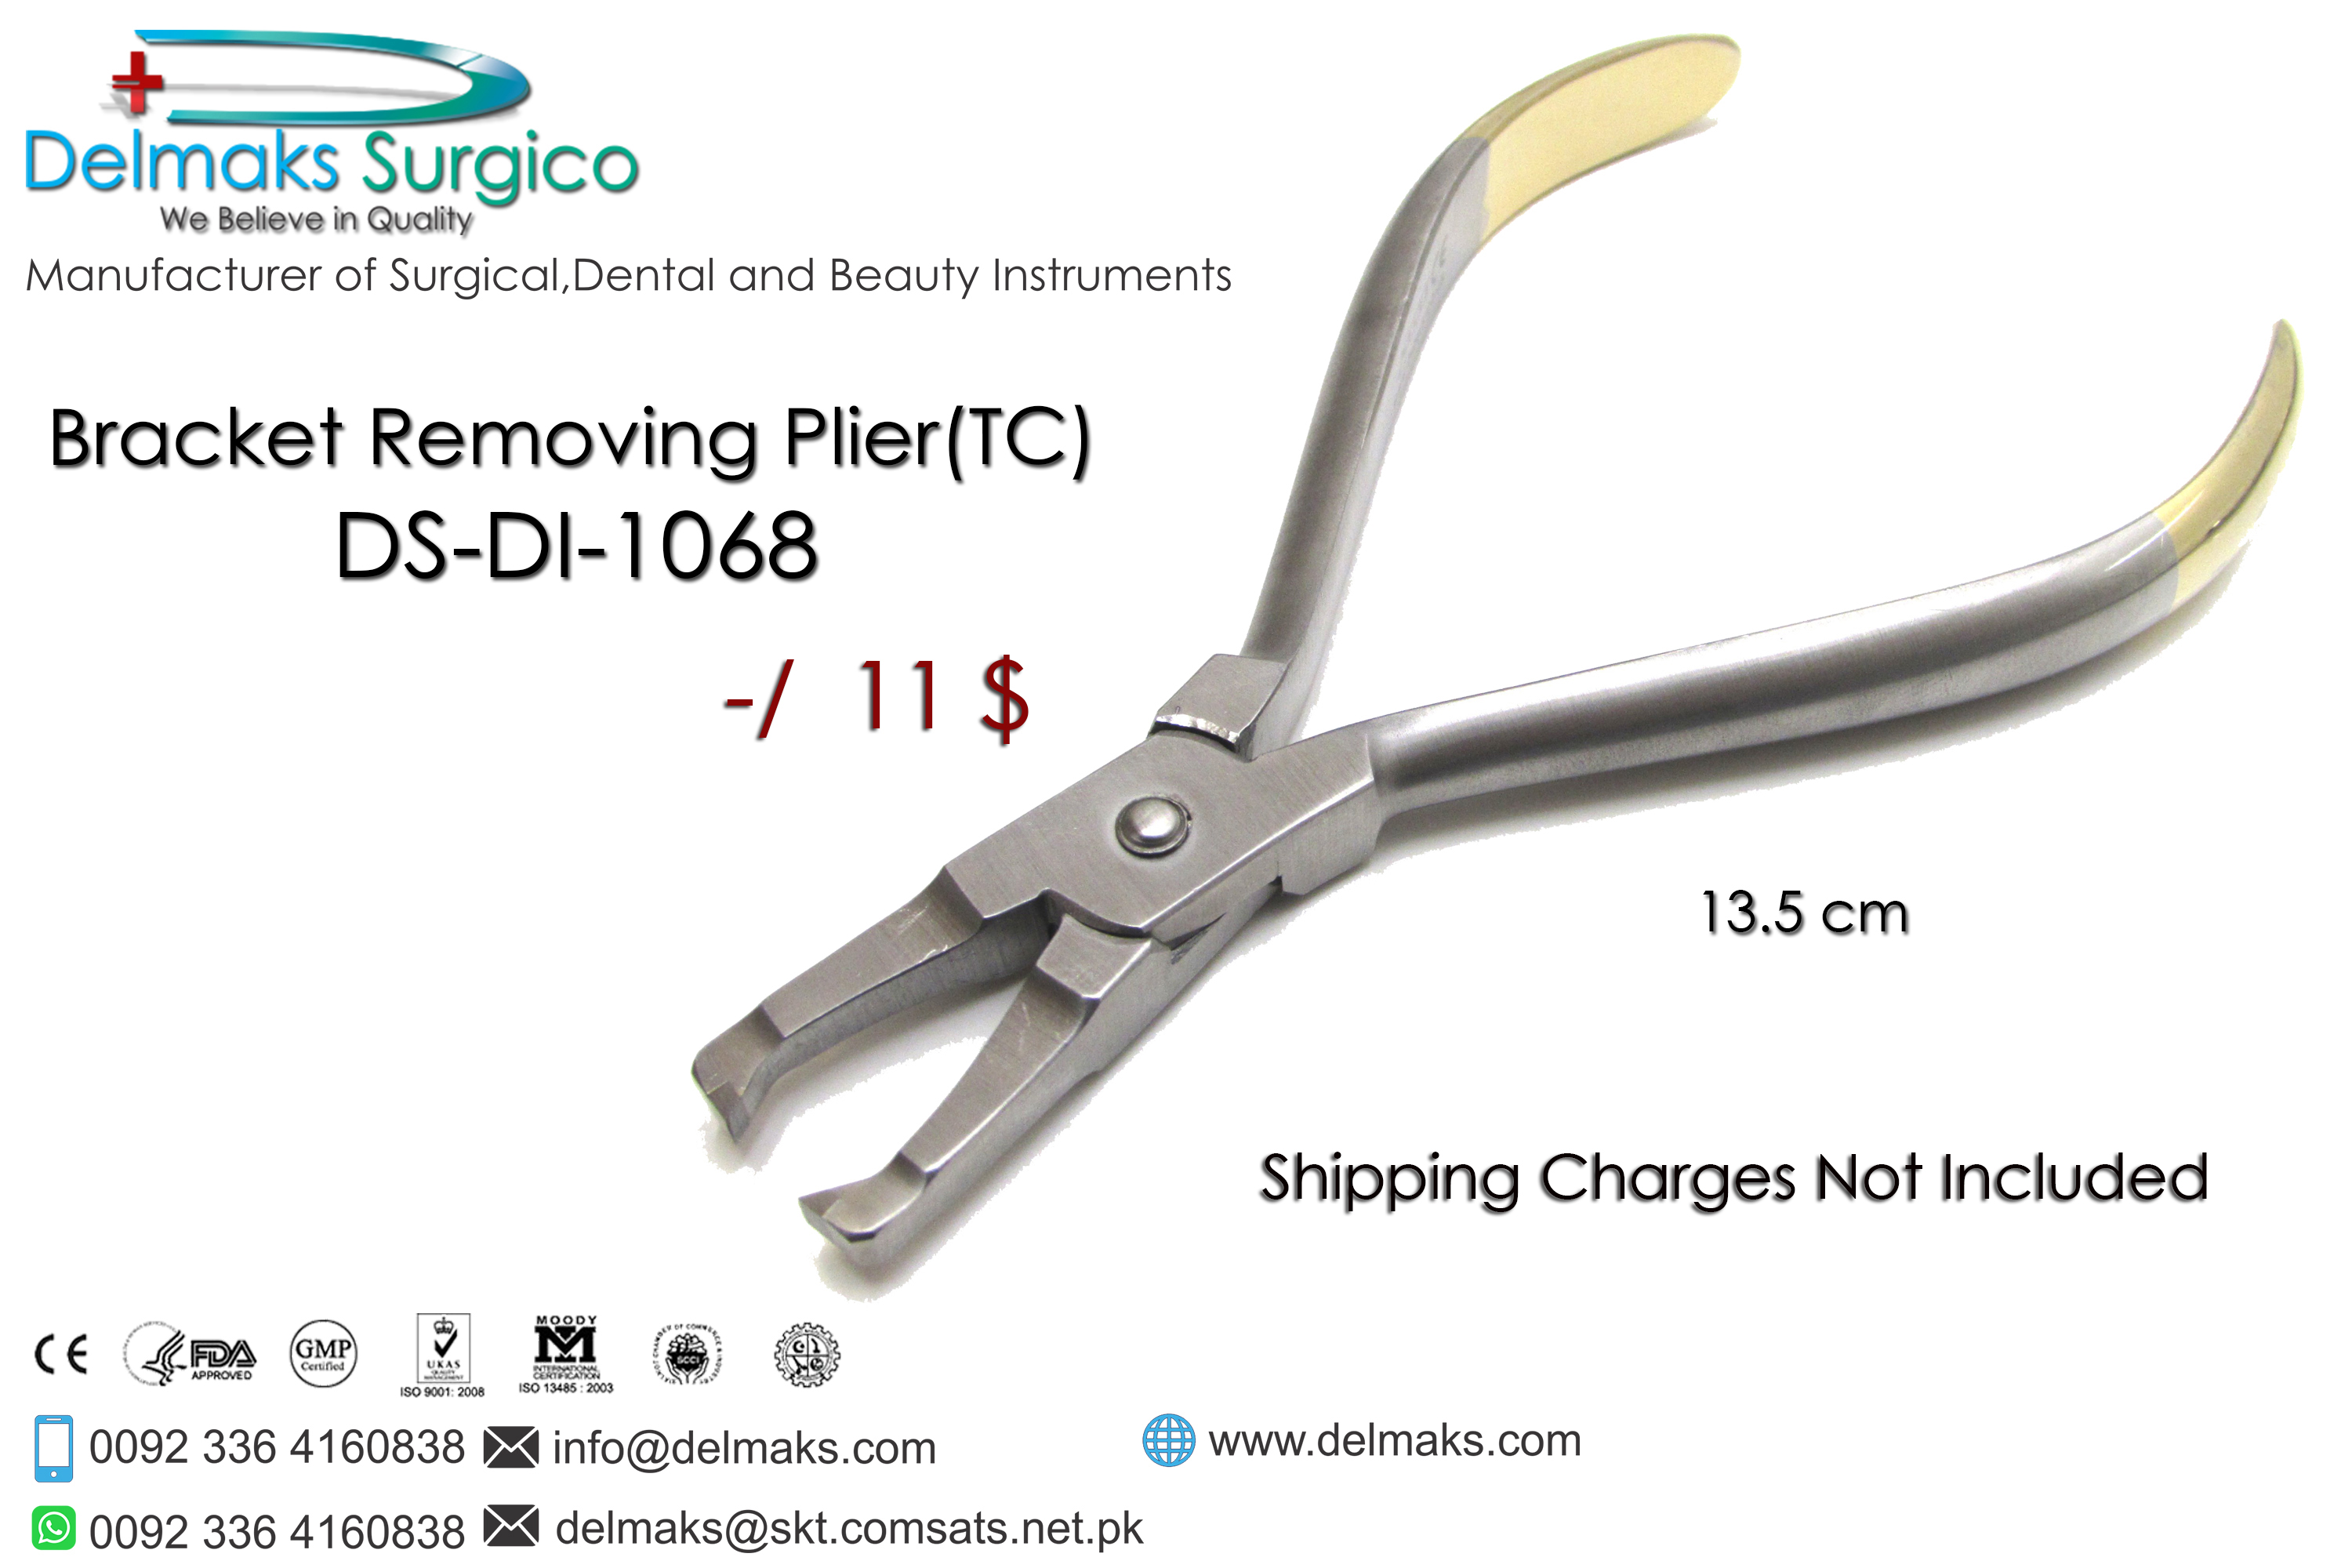 Bracket Removing Plier(TC)-Orhtodontic Pliers-Orthodontics-Dental Instruments-Delmaks Surgico